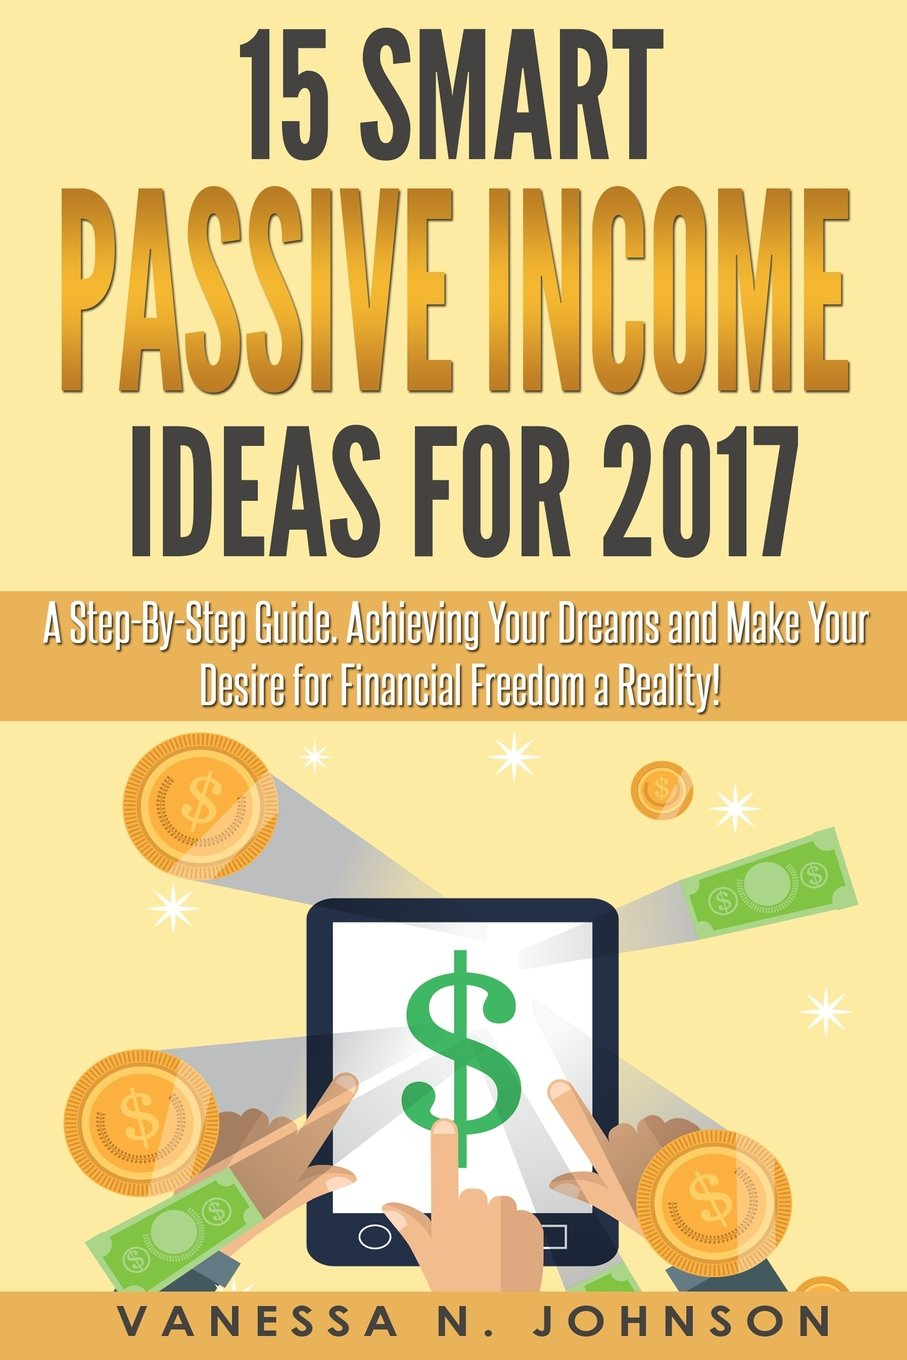 Download Passive Income: 15 Smart Passive Income Ideas for 2017. A Step-By-Step Guide. Achieving Your Dreams and Make Your Desire for Financial Freedom a Reality! ebook